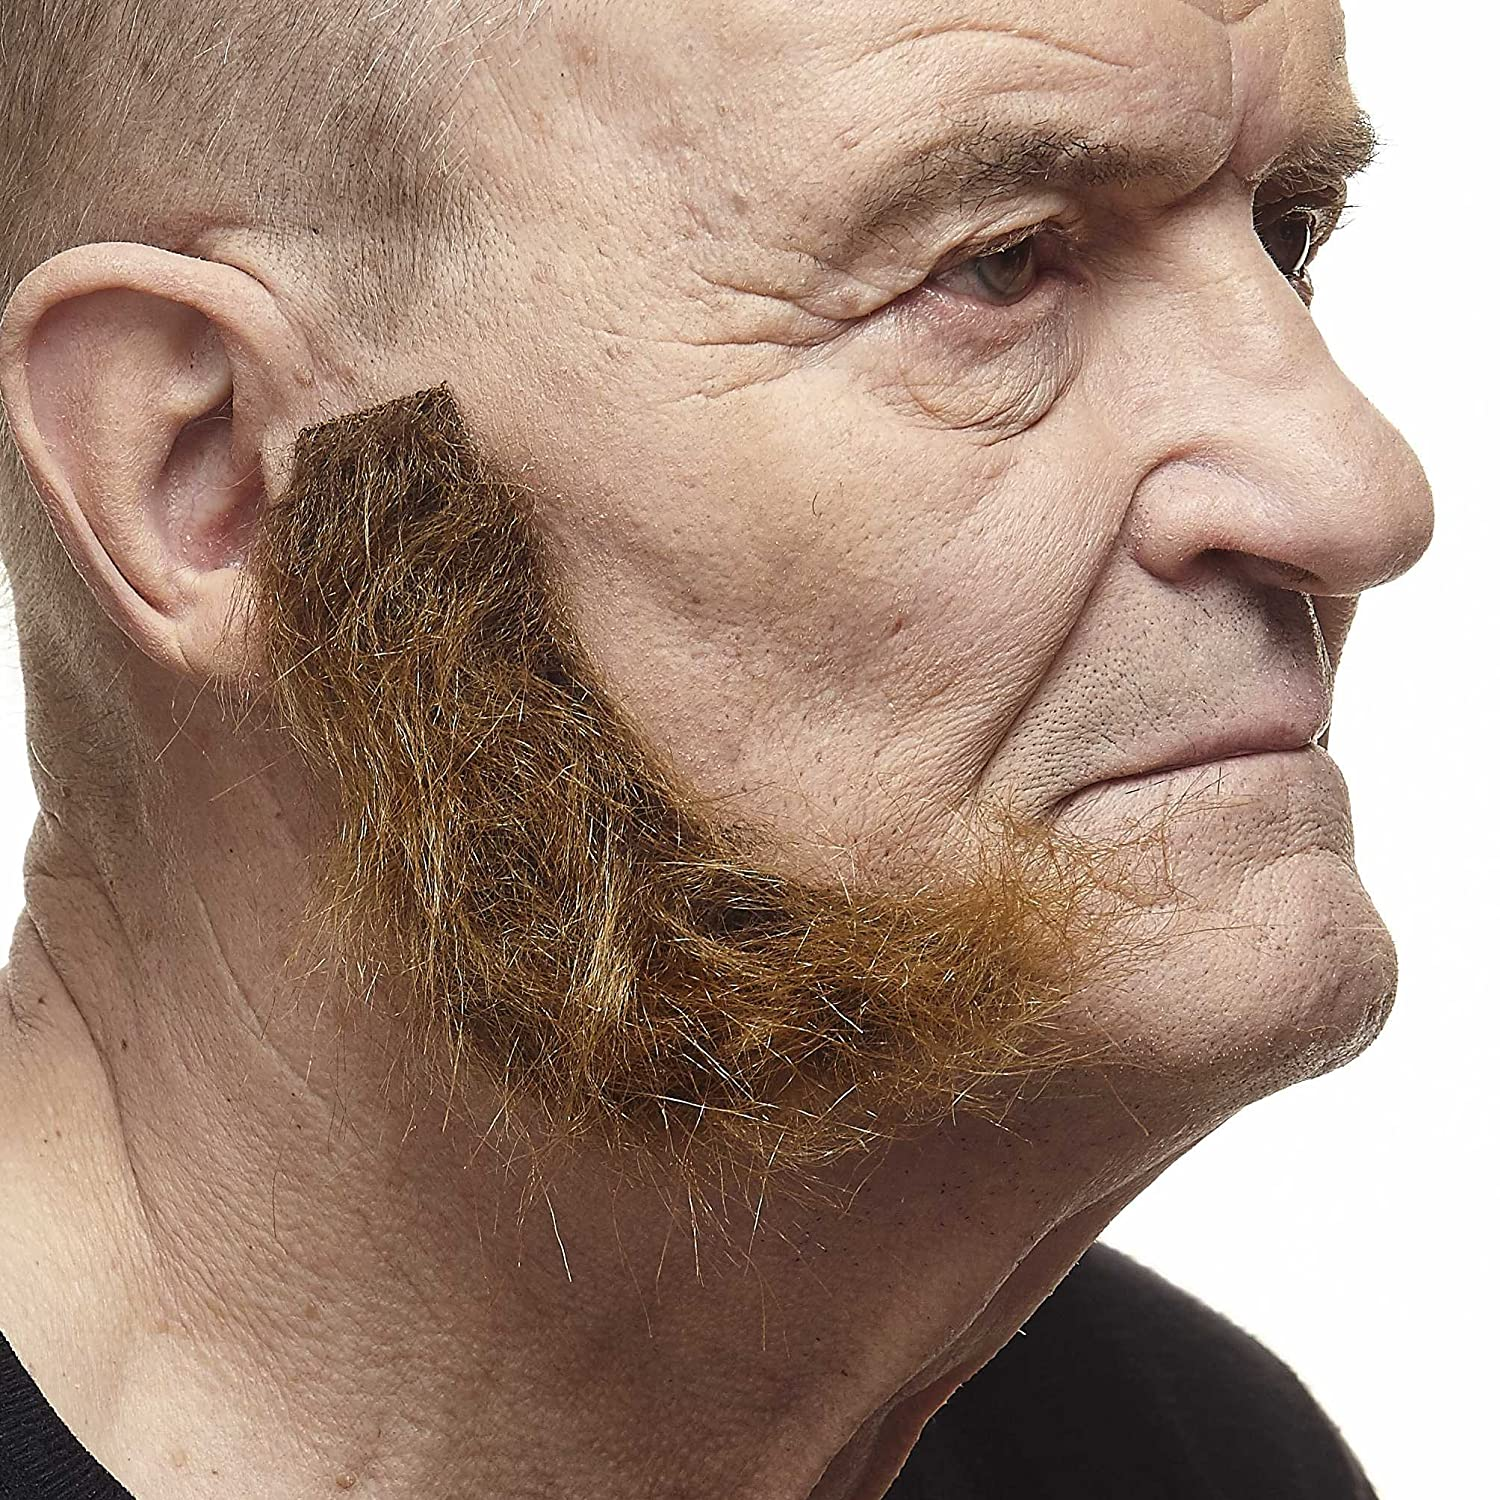 High quality Realistic L shaped fake mutton chops sideburns, self adhesive Balionu salis